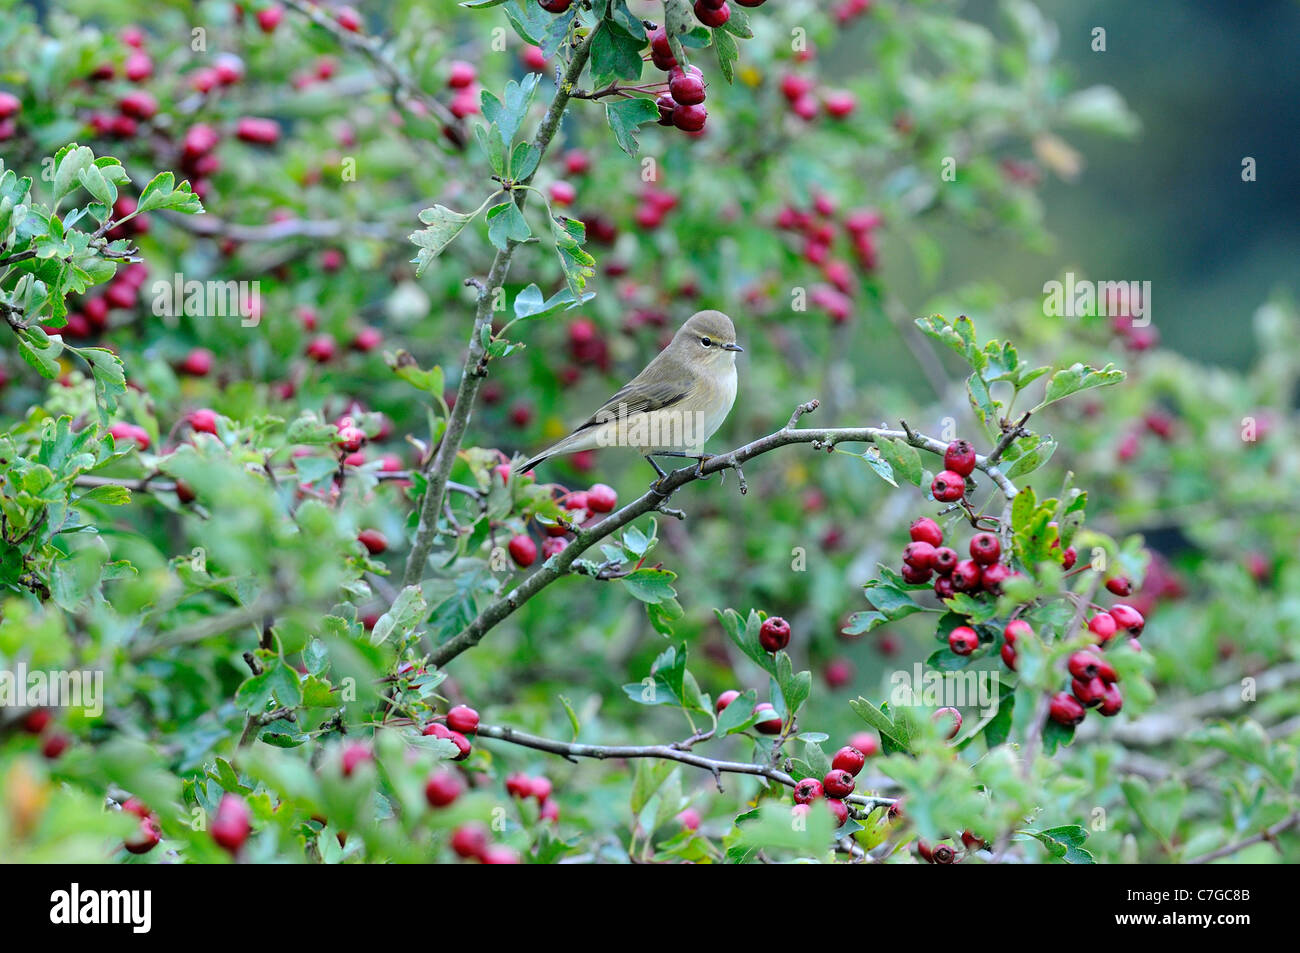 Chiffchaff (Phylloscopus collybita) perched in hawthorn tree, Devon, UK - Stock Image